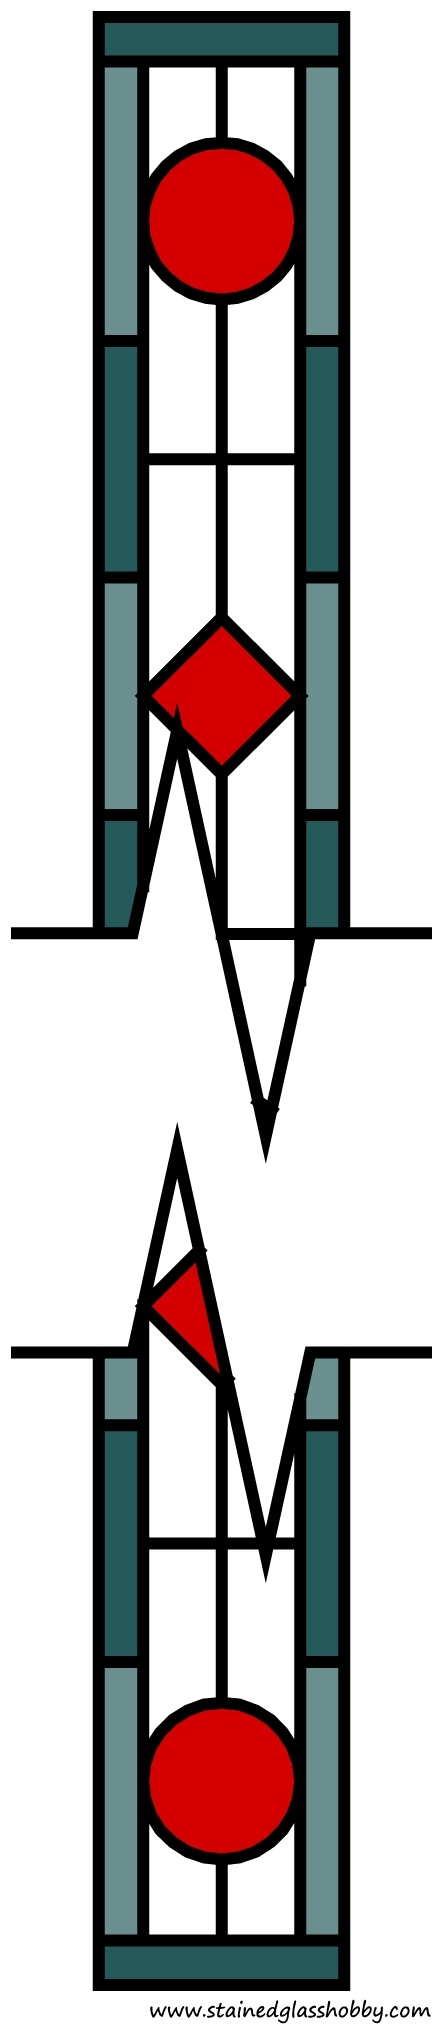 Variable length pattern for stained glass panels